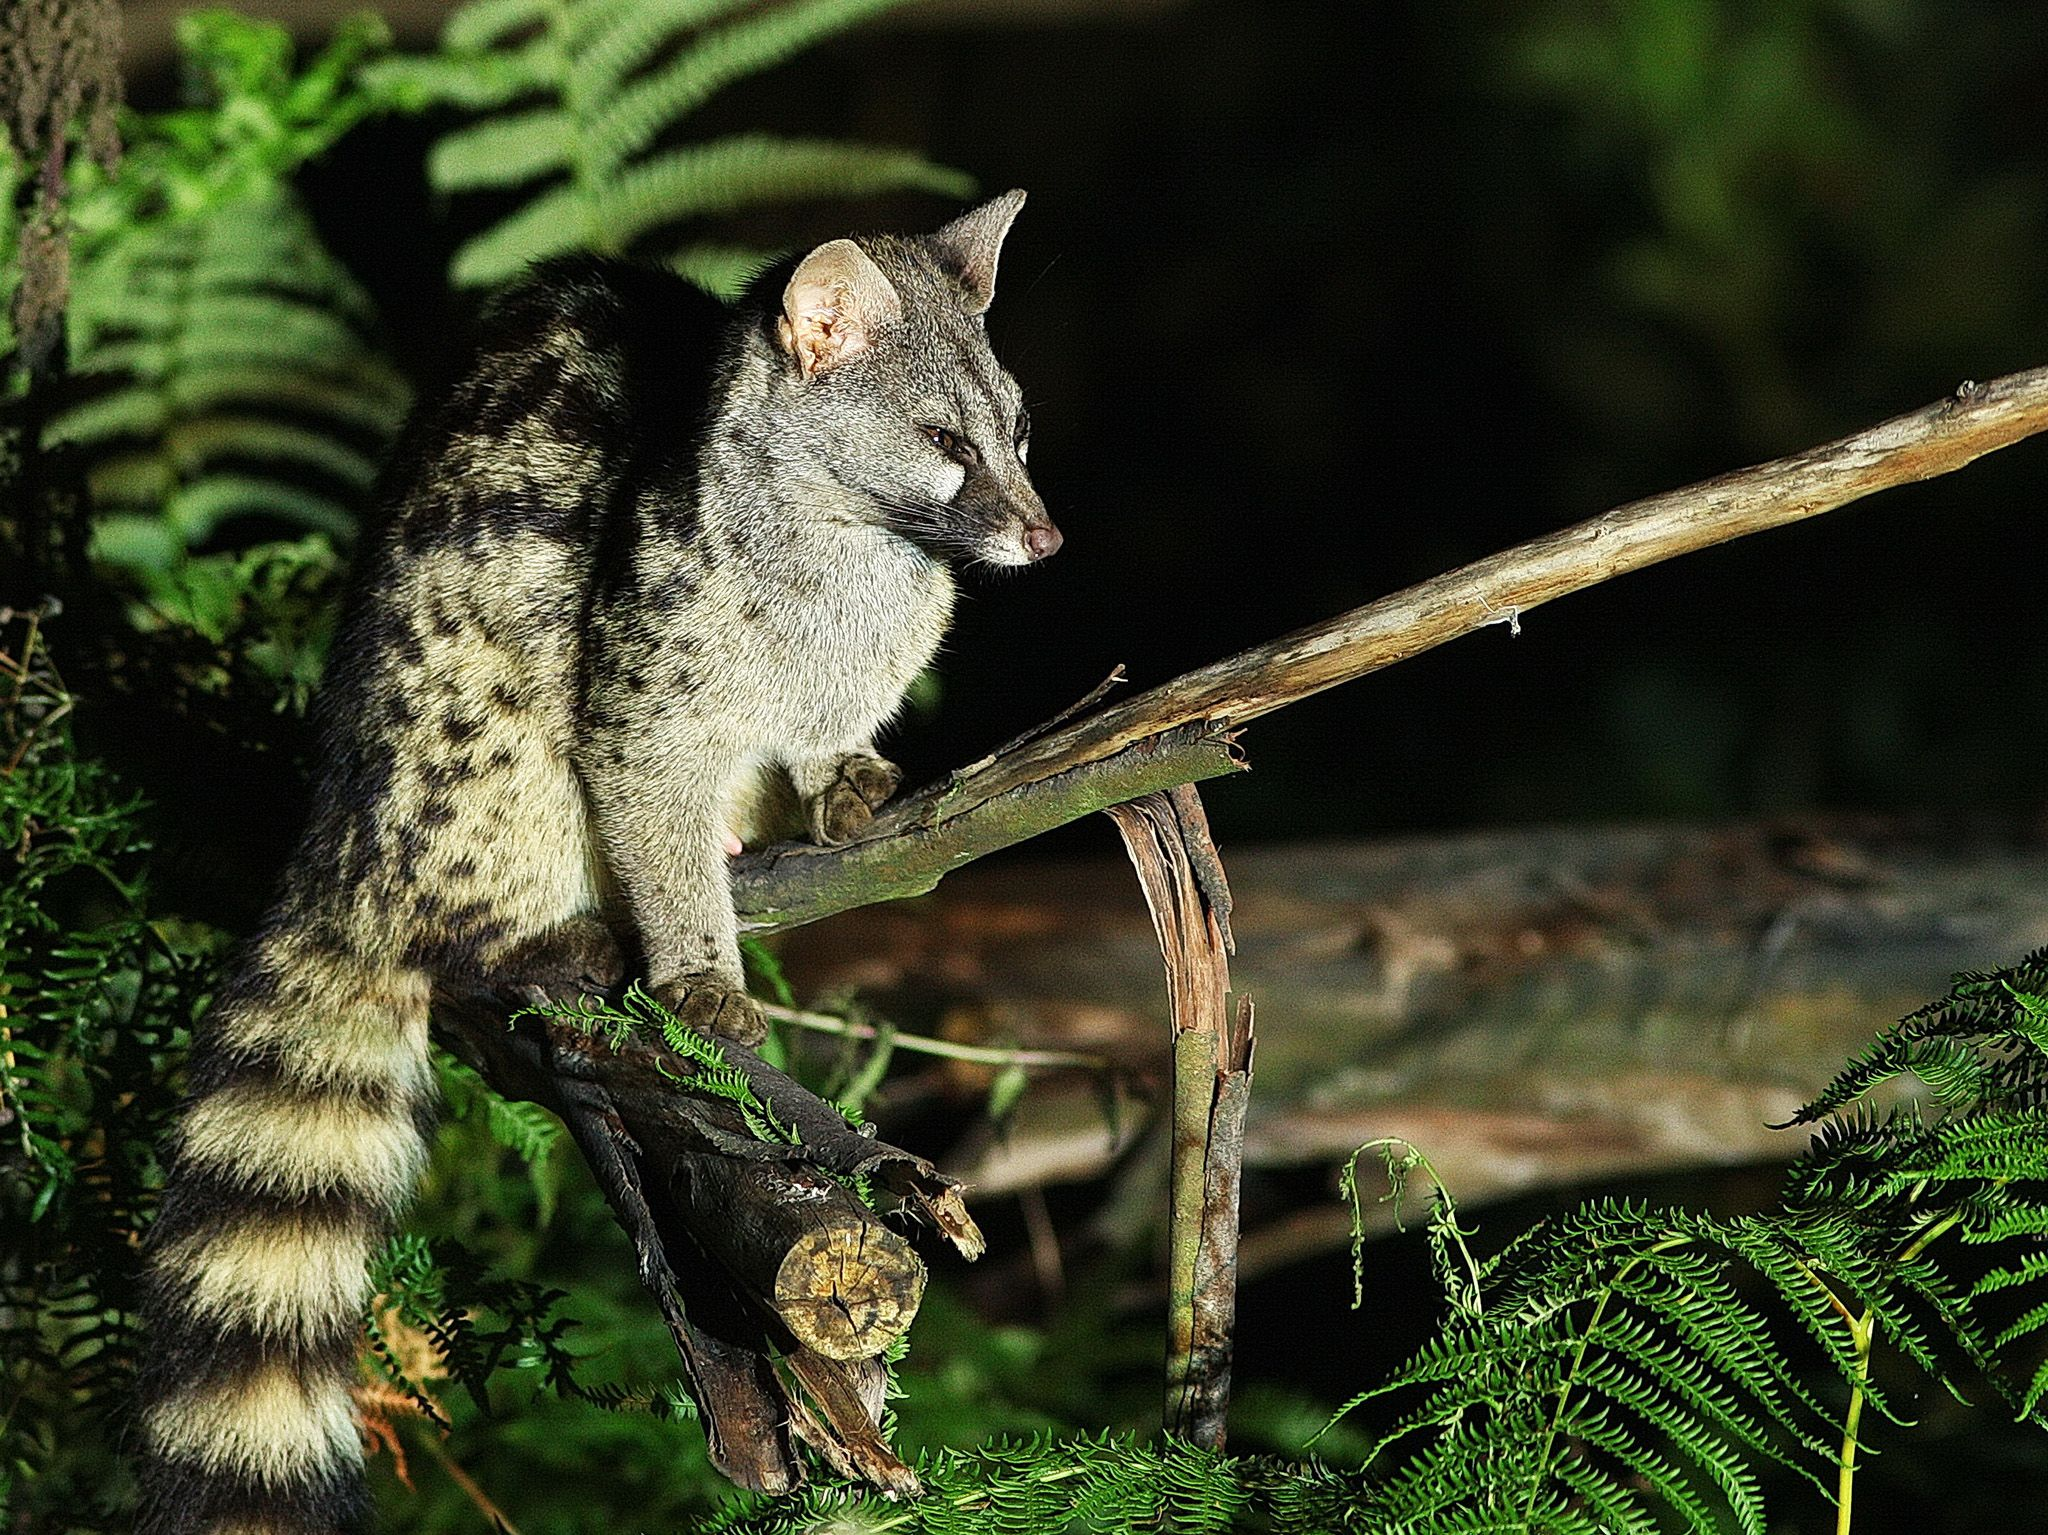 Spain:  A genet.  This image is from Wild Little Cats. [Photo of the day - March 2018]